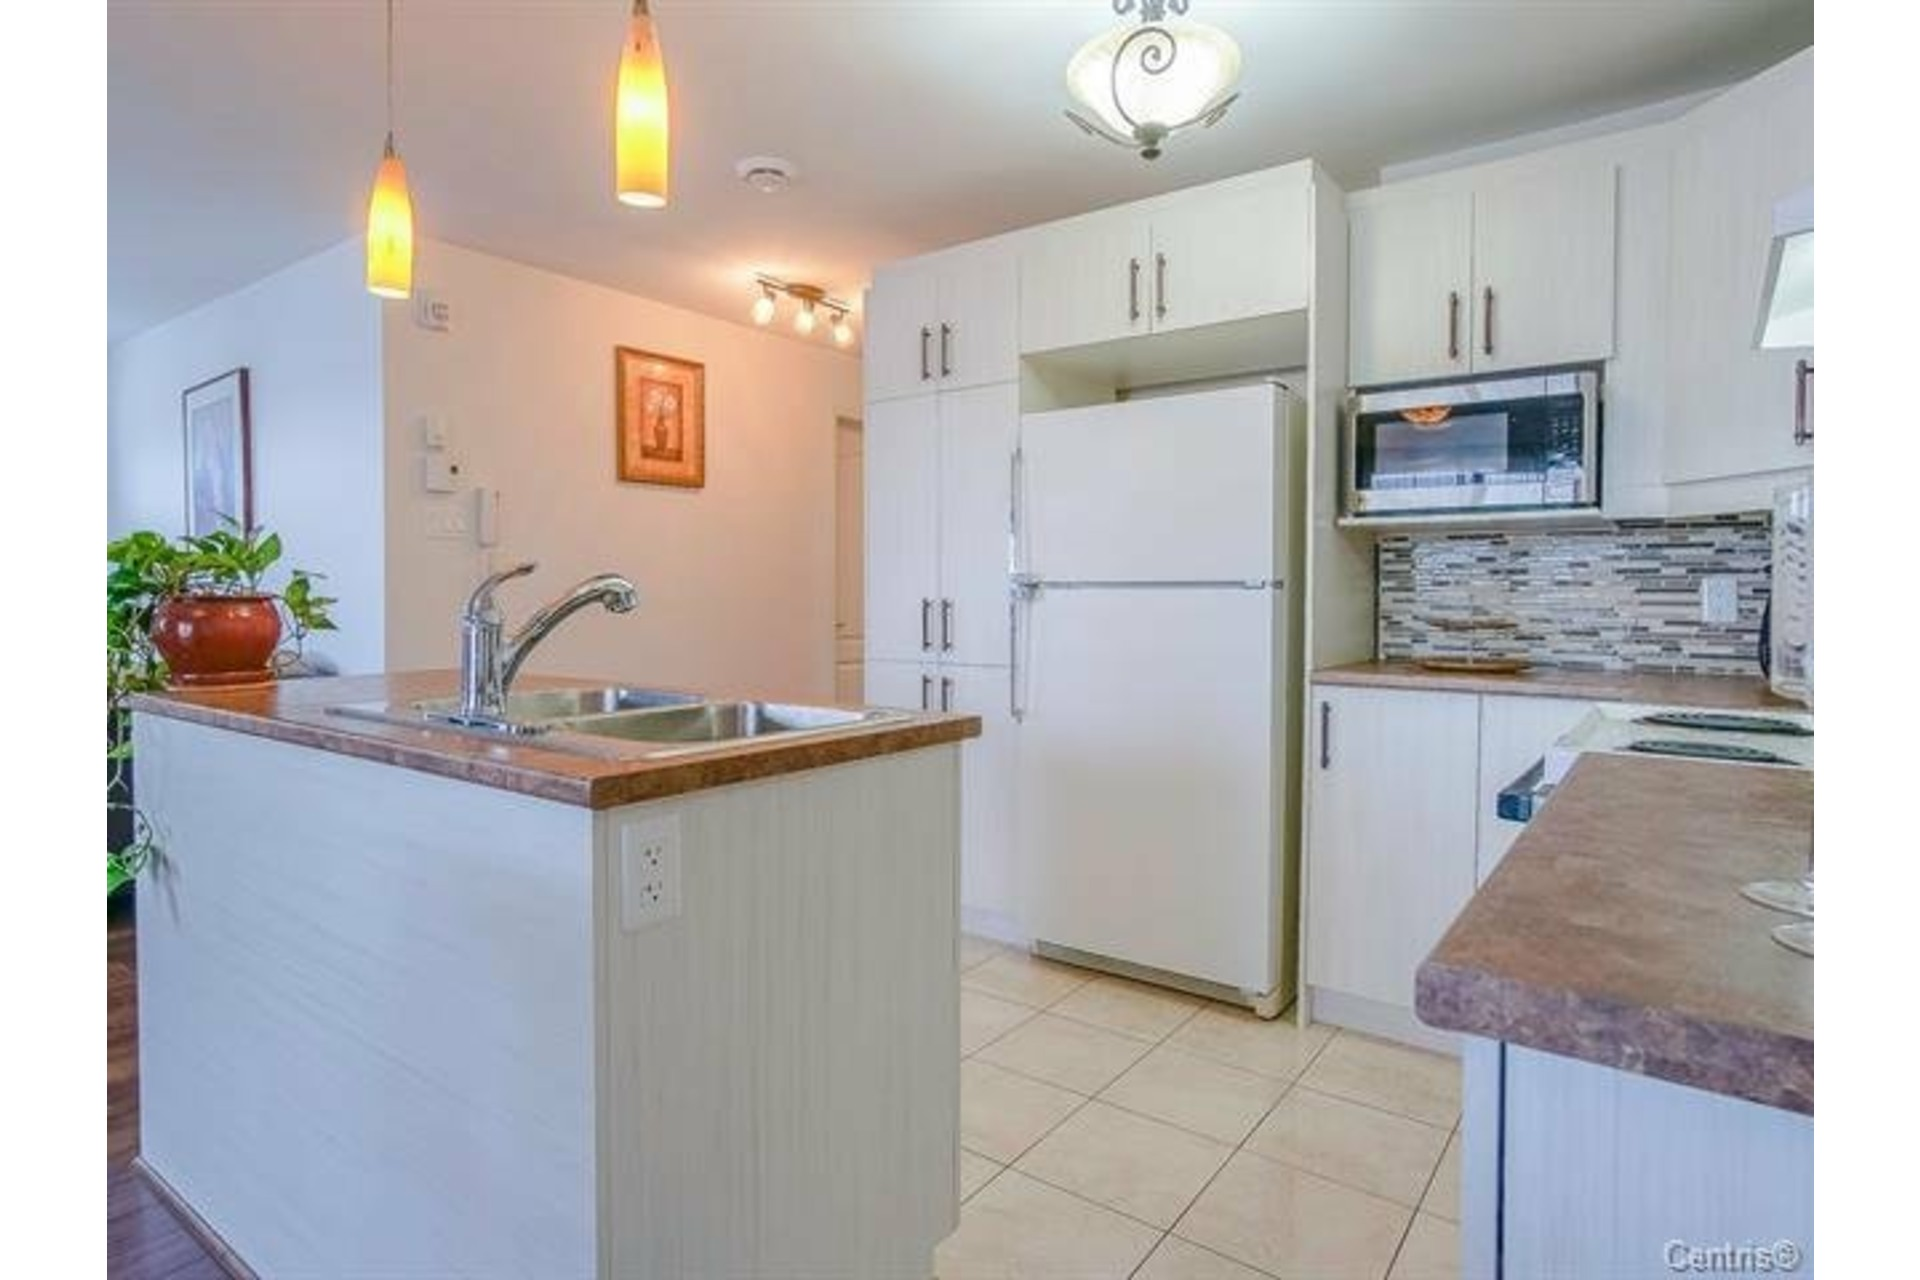 image 4 - Apartment For rent Vaudreuil-Dorion - 7 rooms